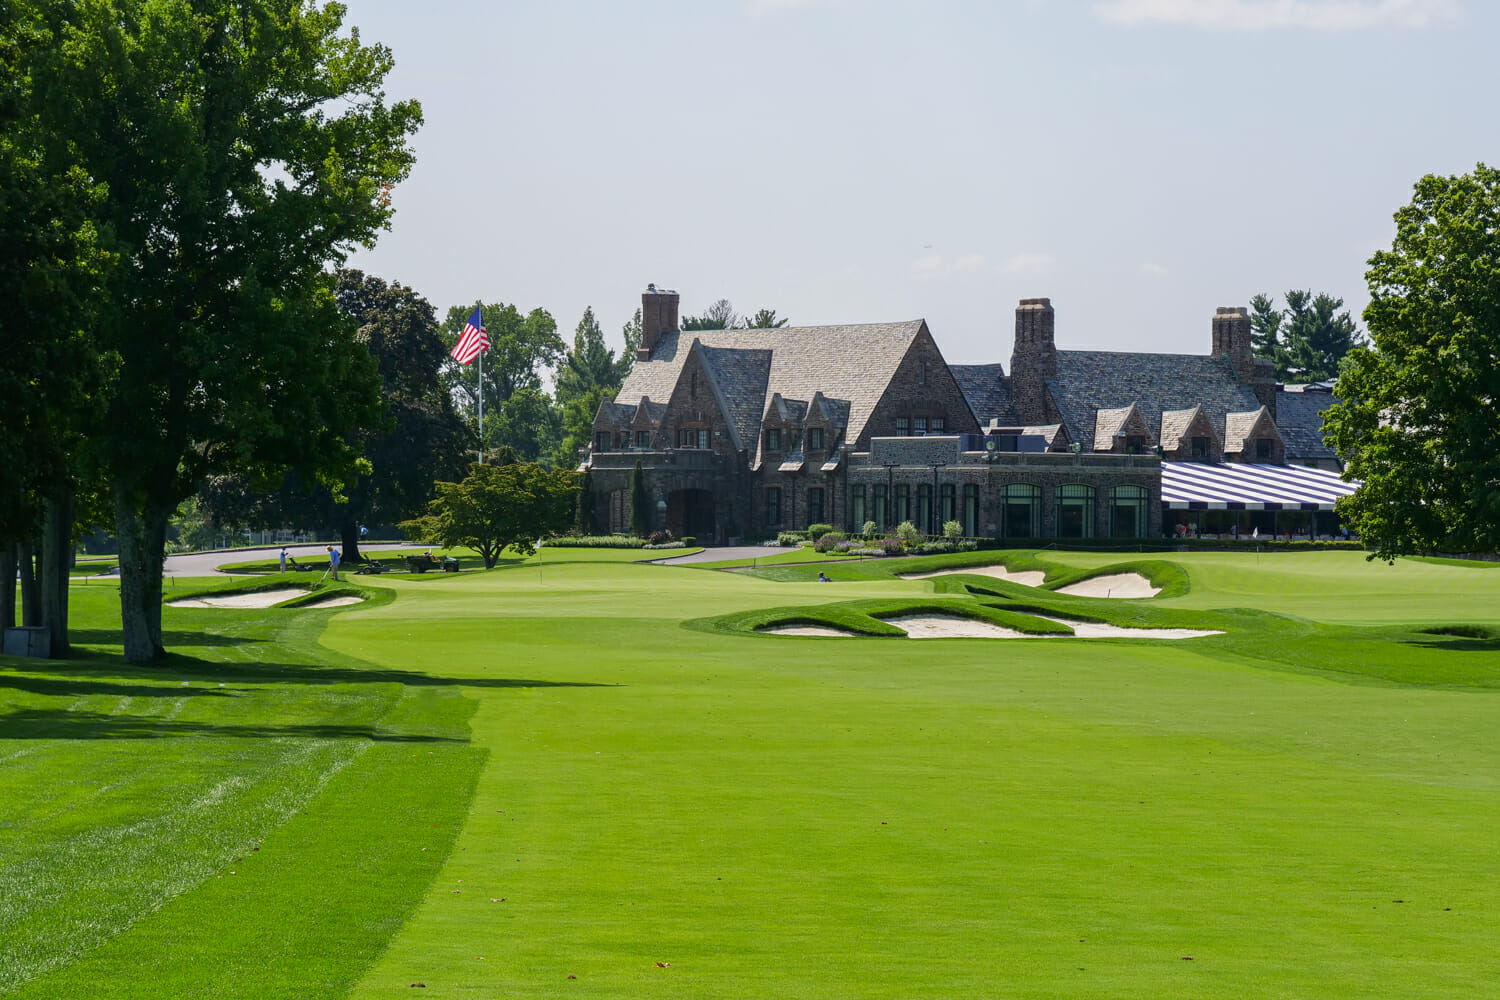 Ninth hole at Winged Foot Golf Club looking towards Clubhouse